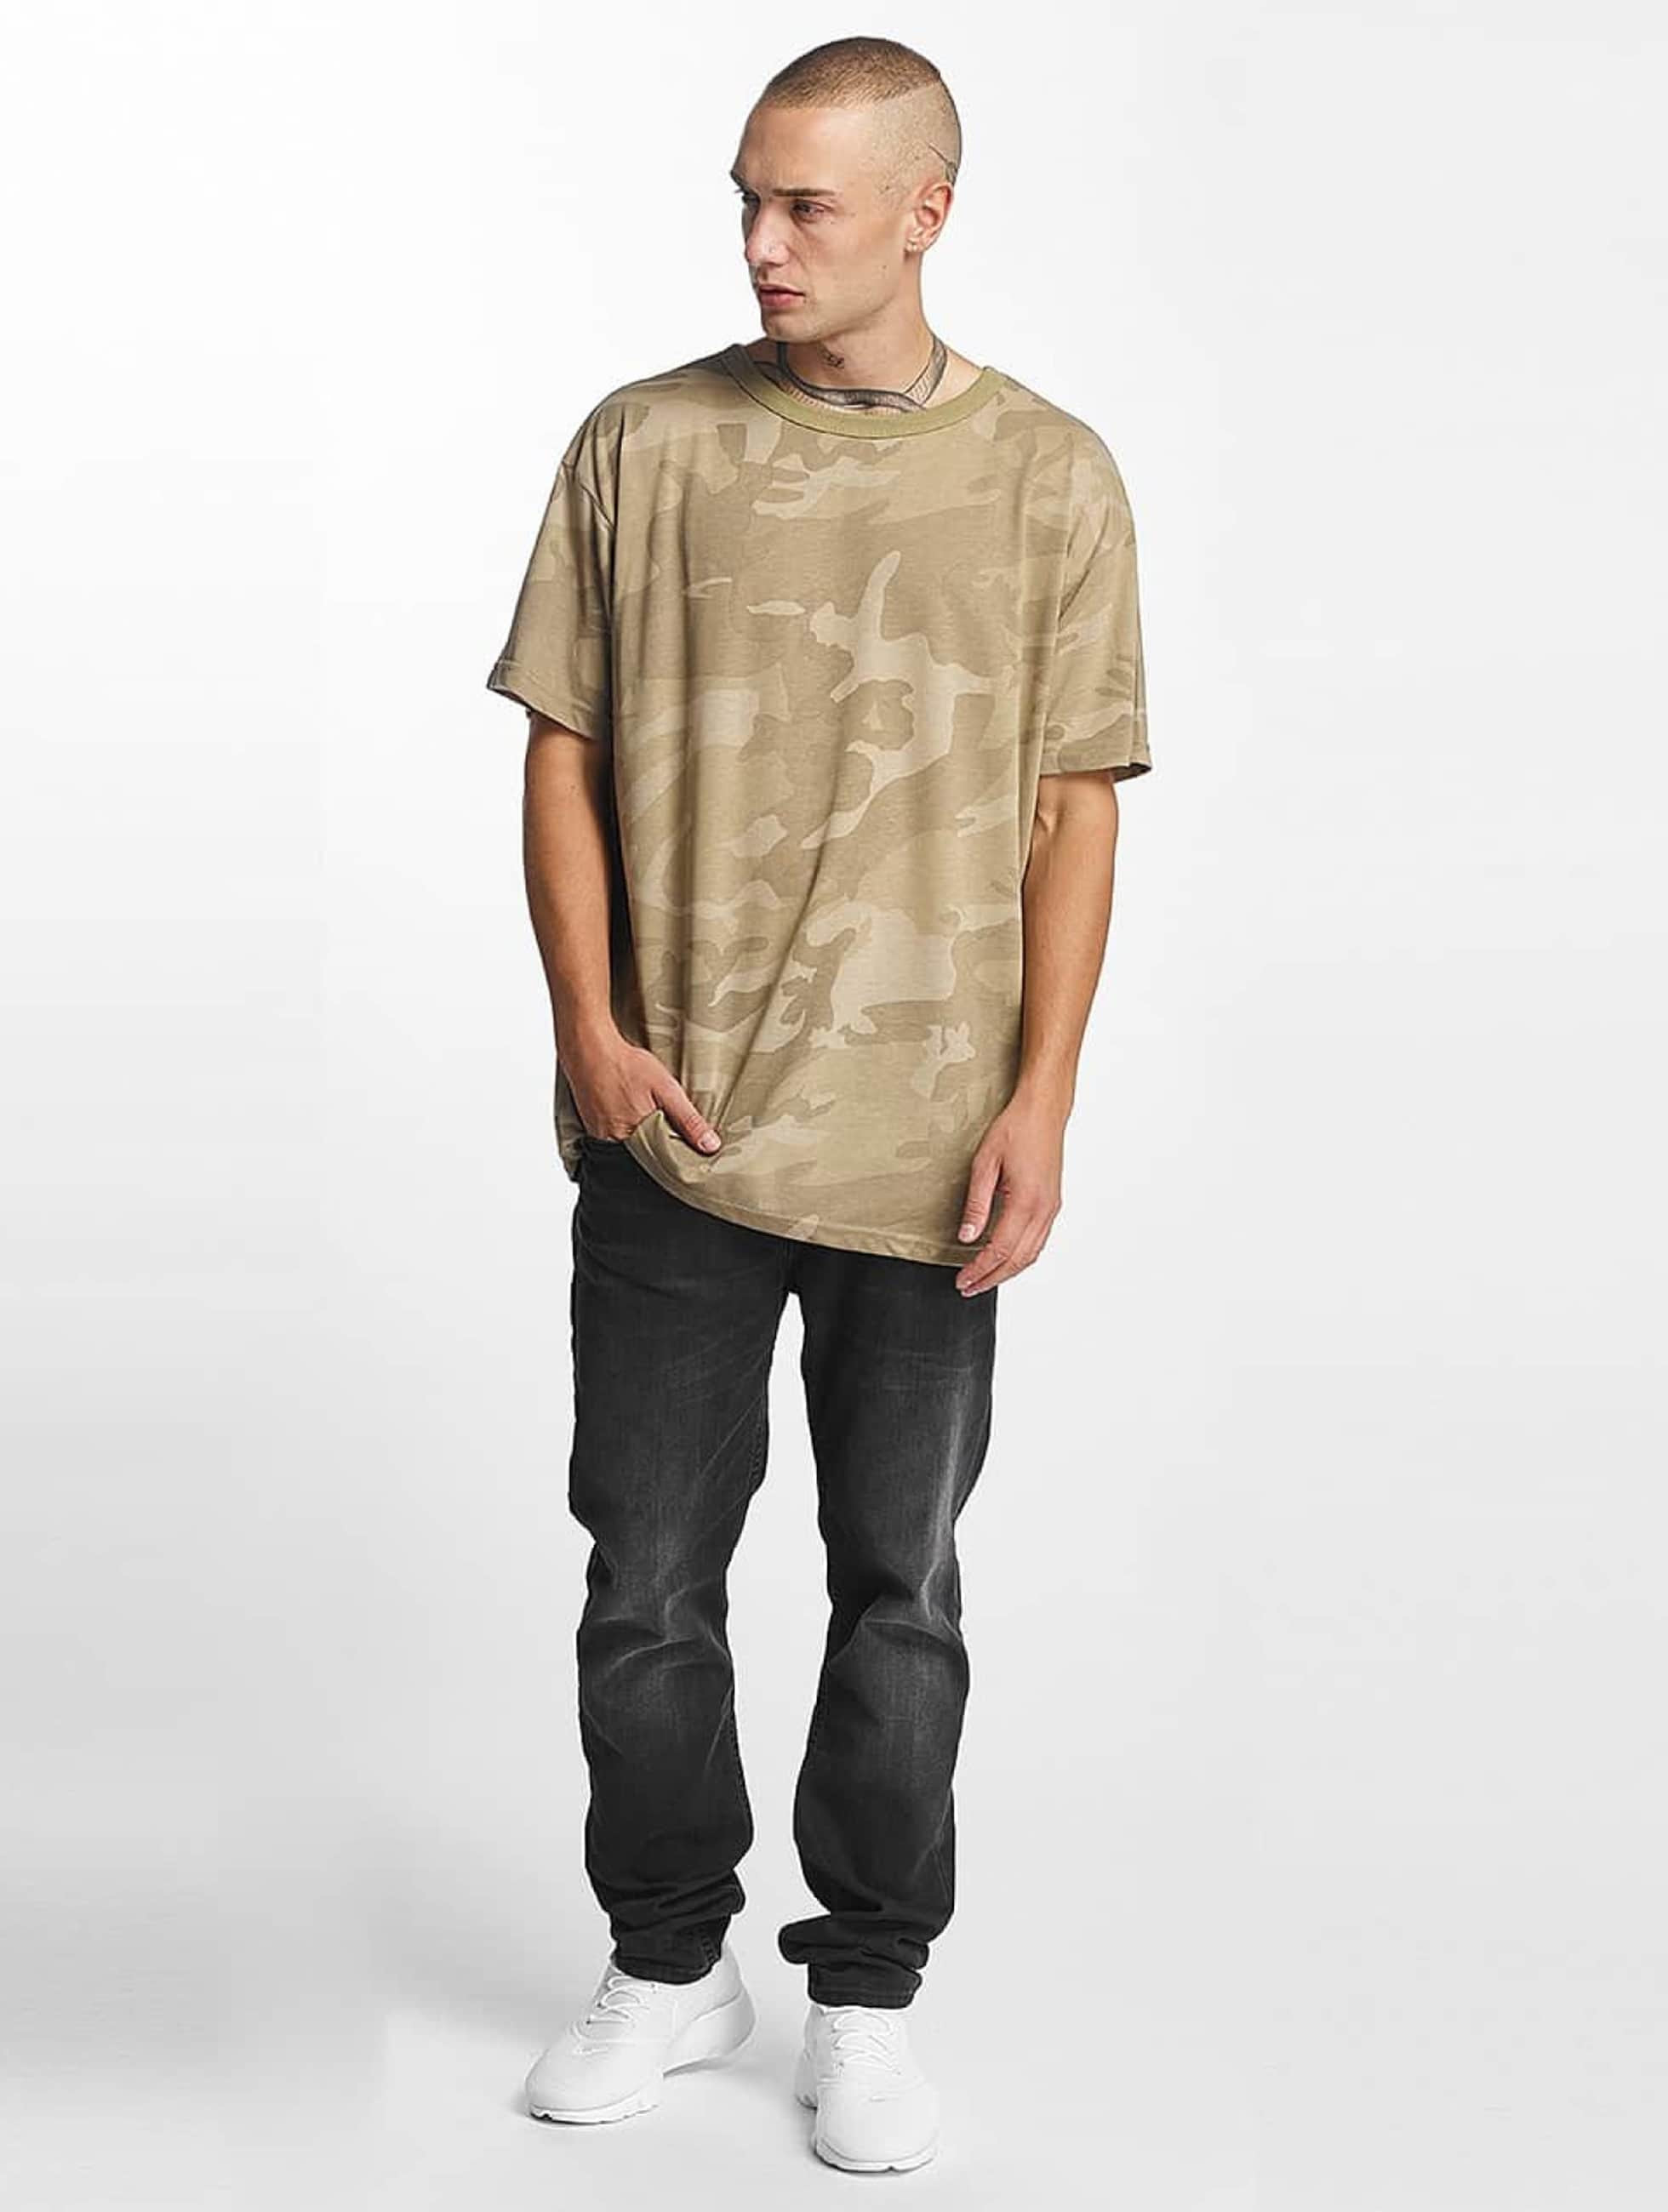 urban classics herren t shirt camo oversized in camouflage 400136. Black Bedroom Furniture Sets. Home Design Ideas